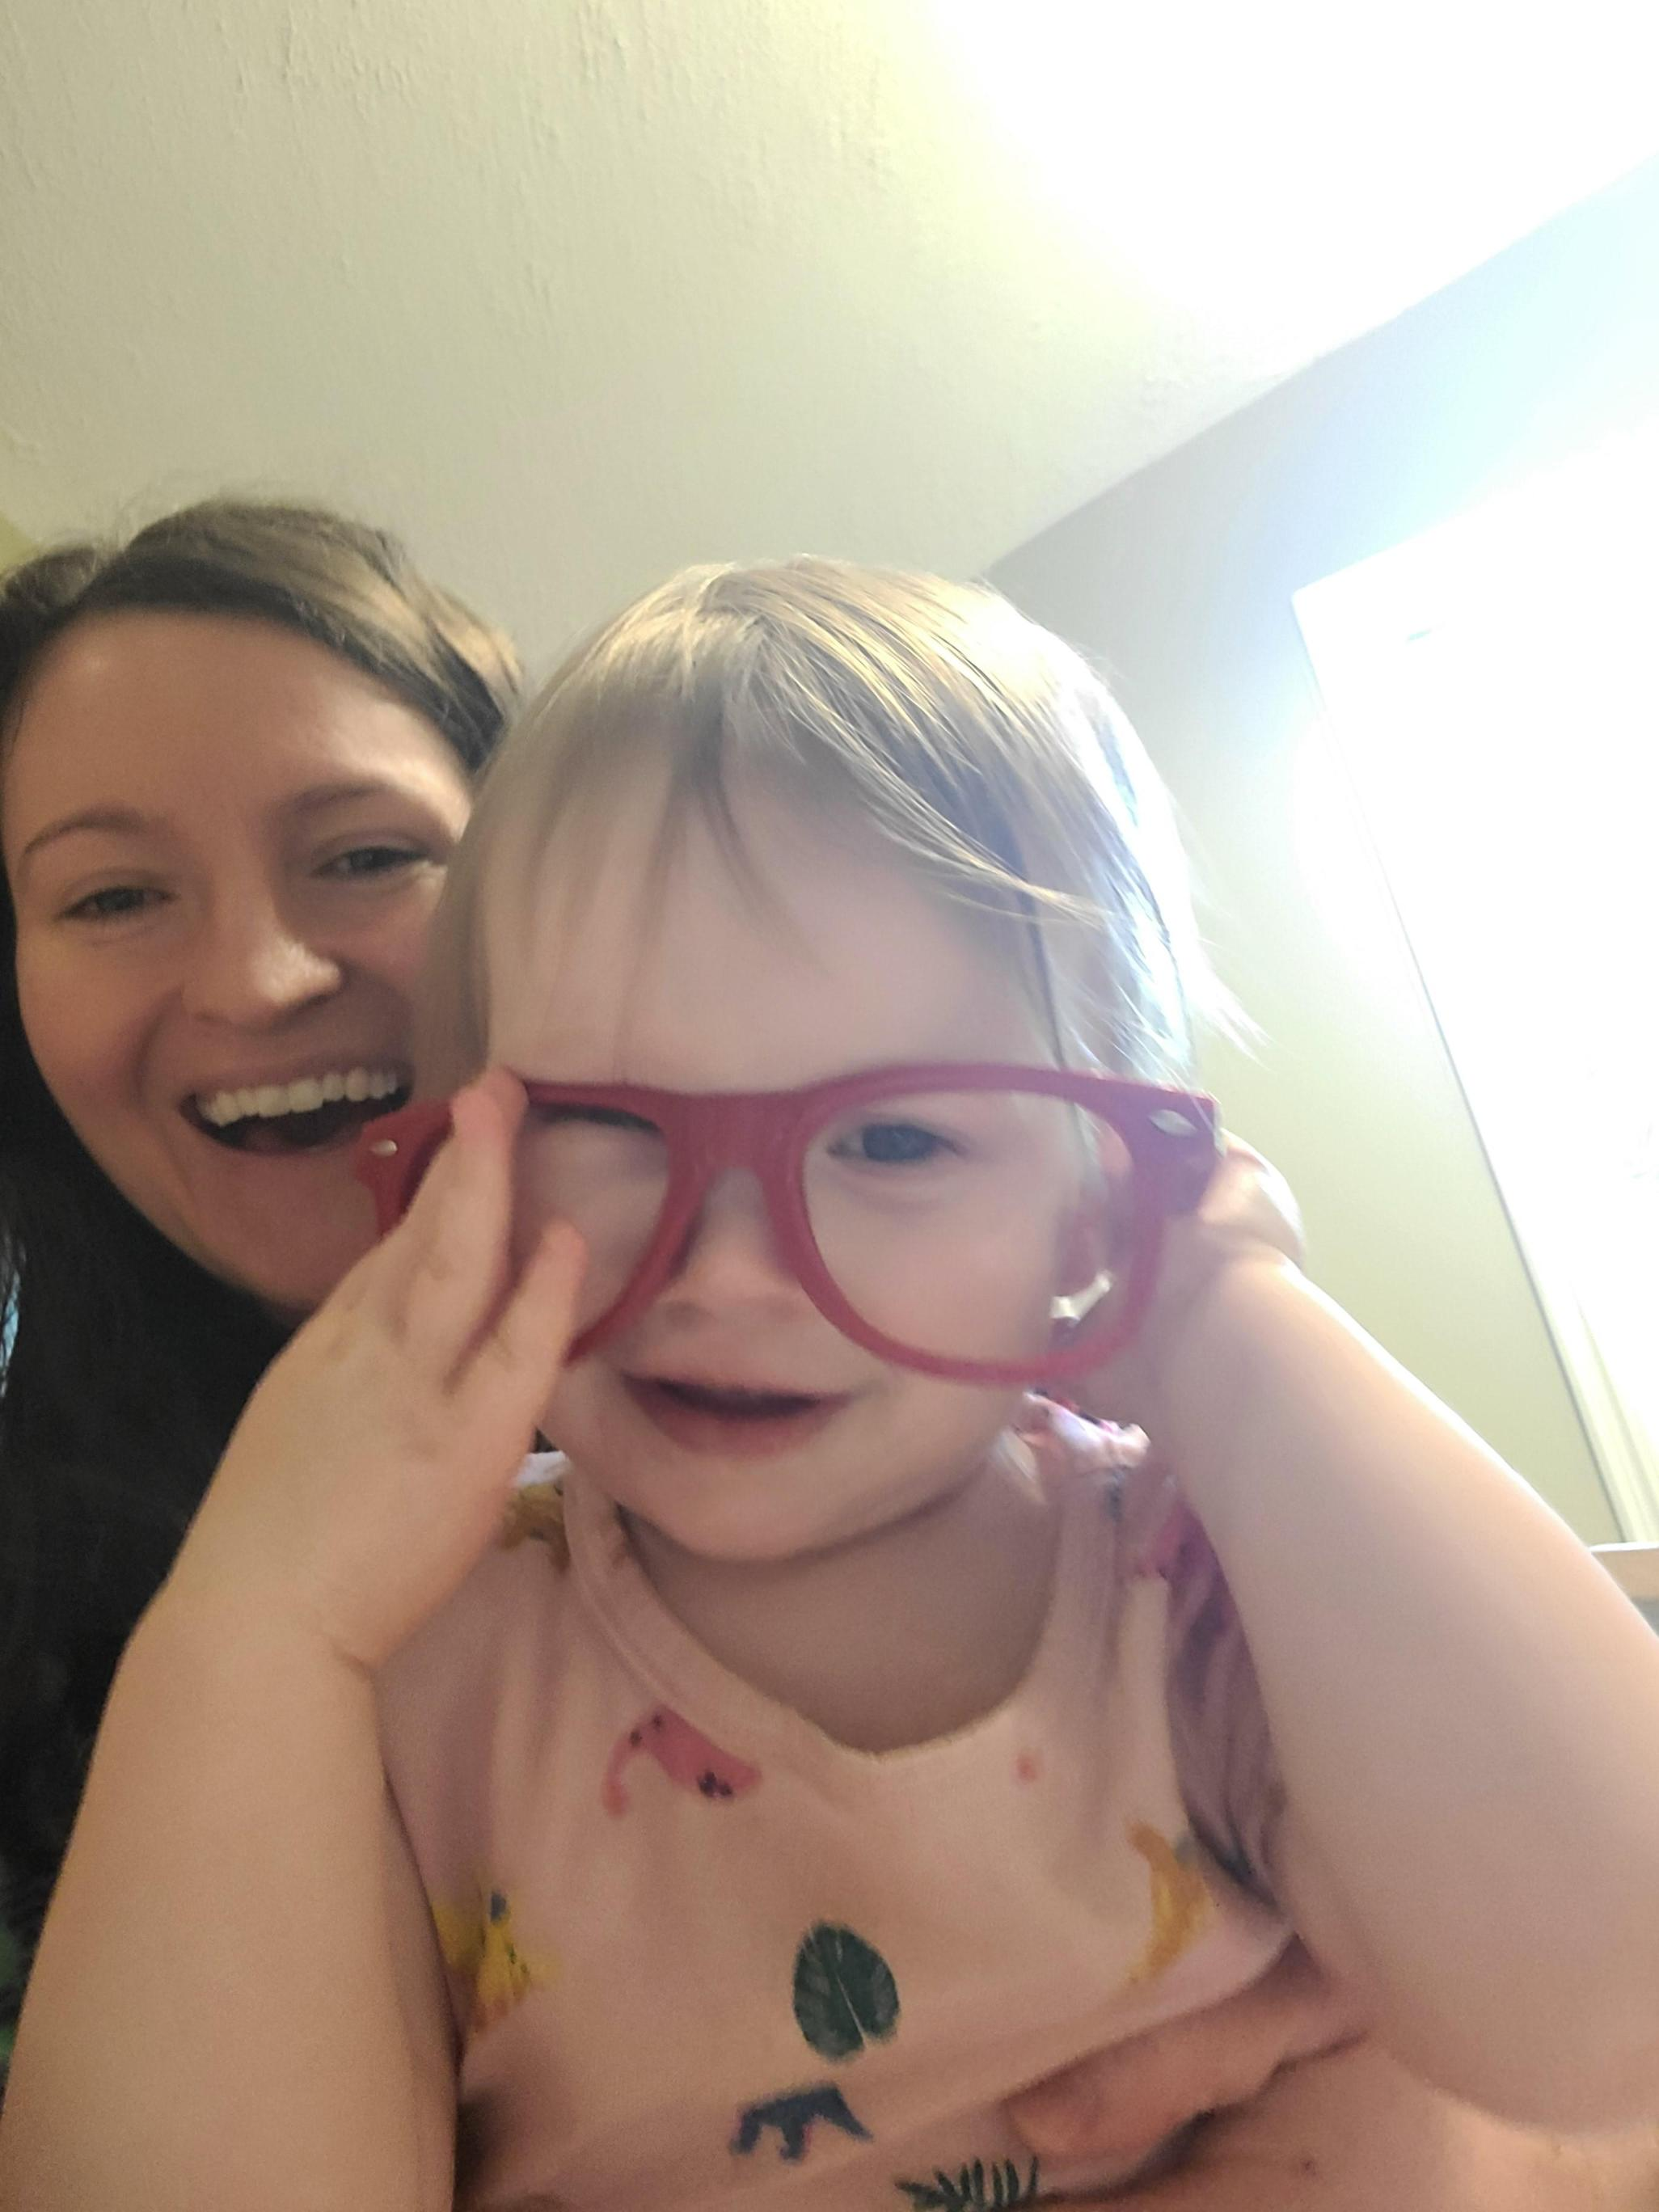 Ensley and I, playing with glasses